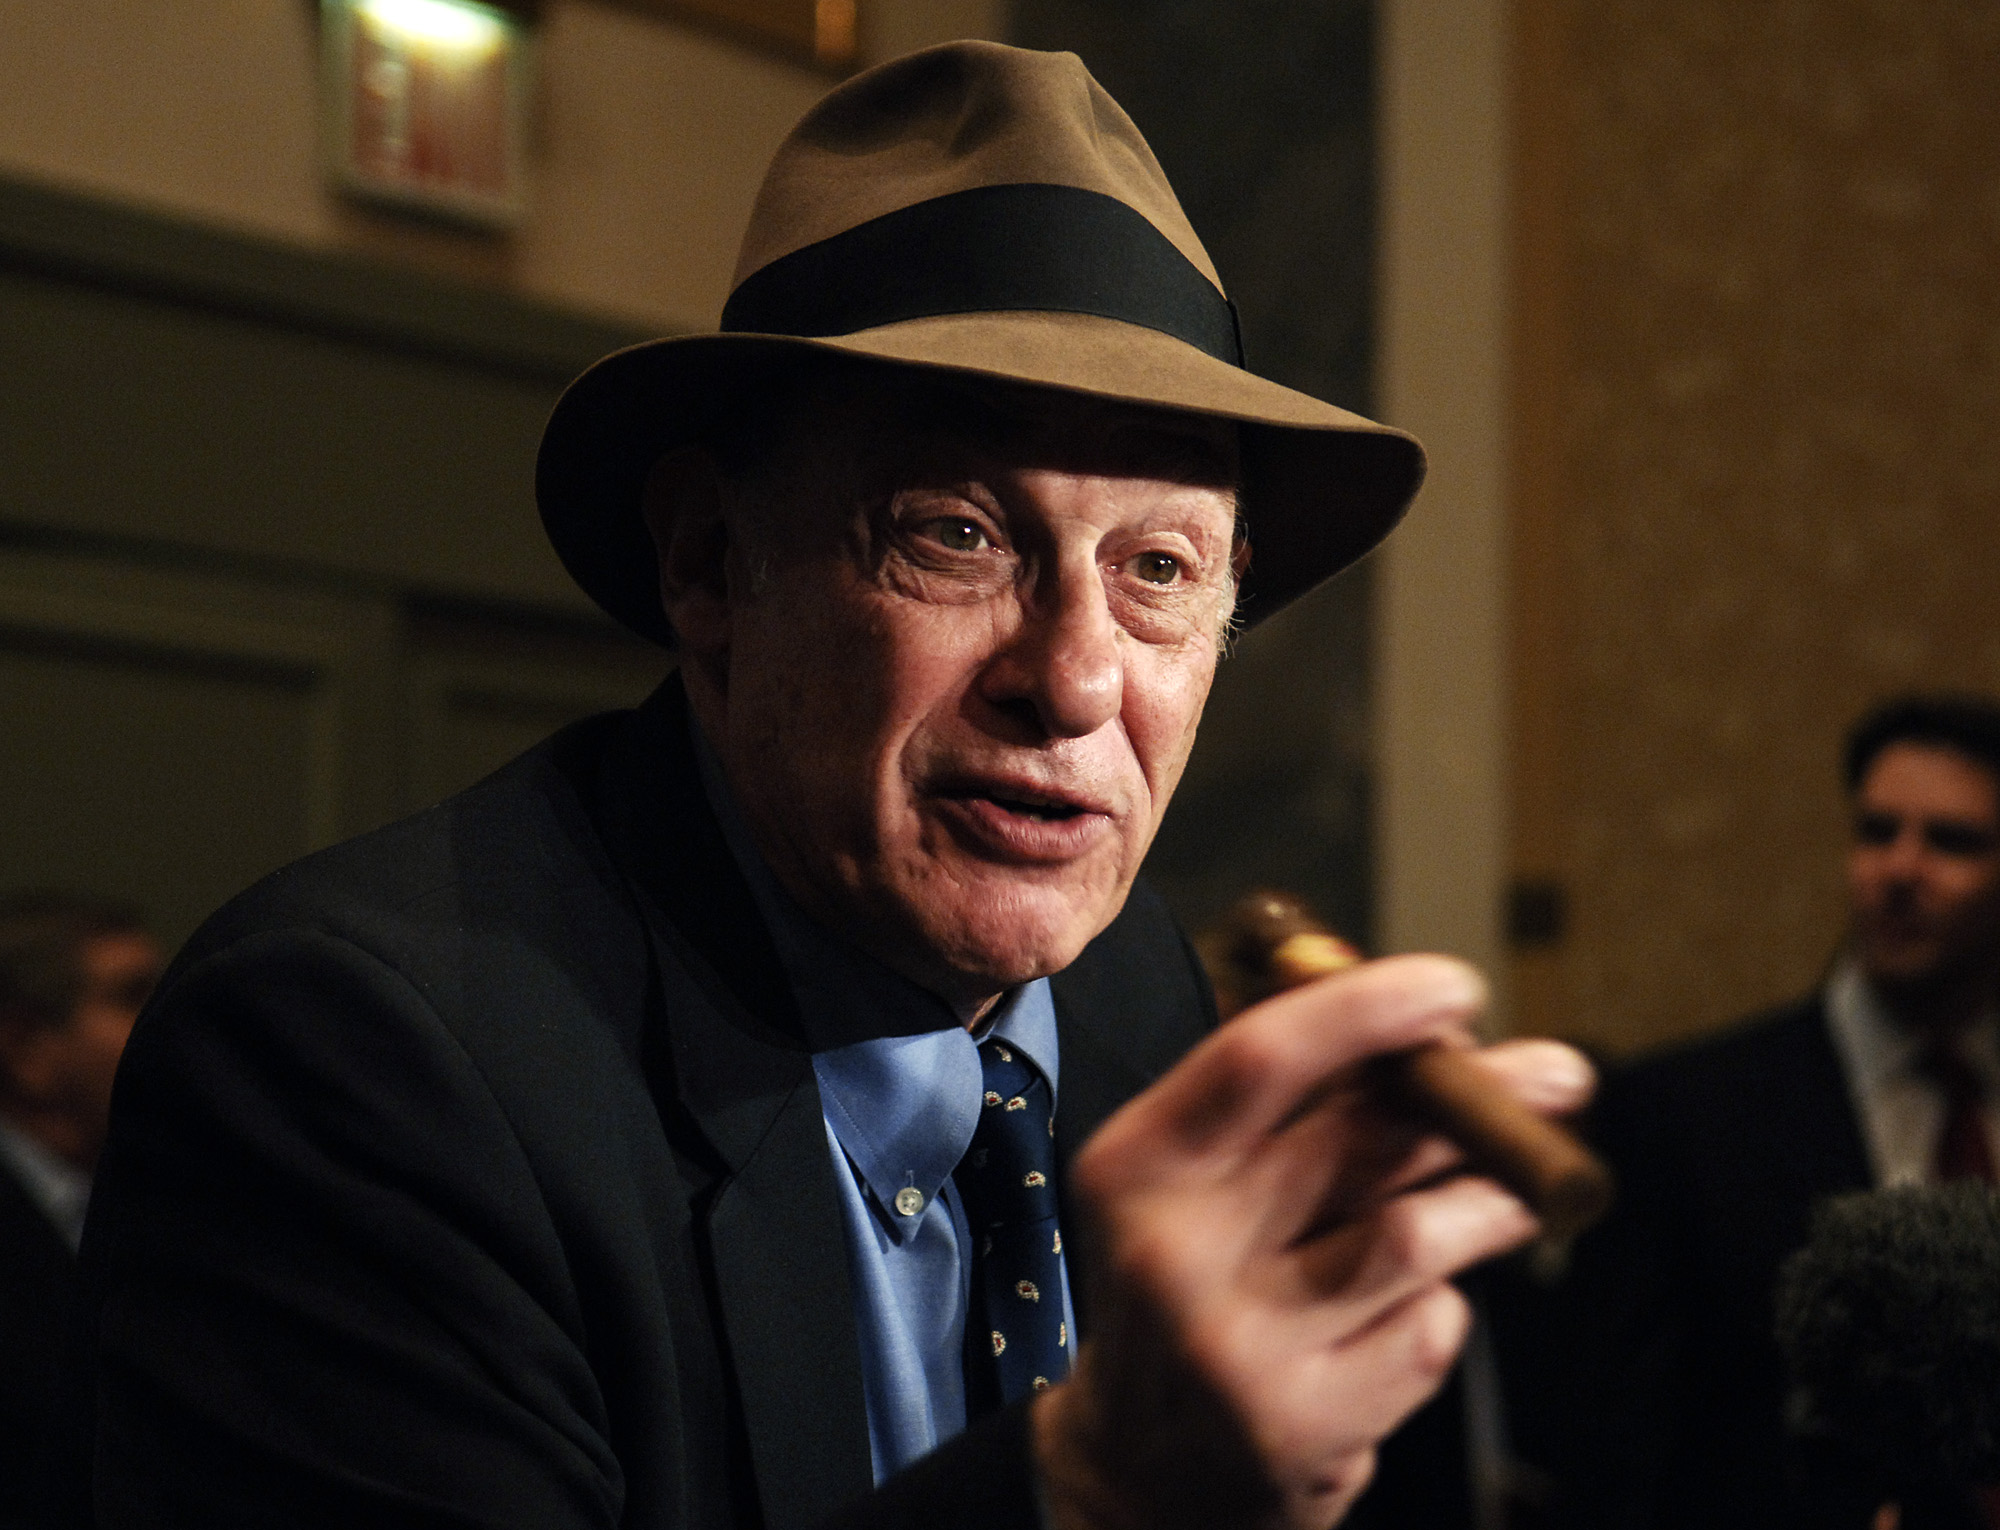 In this file photo taken Oct. 28, 2005, boxing historian Bert Sugar is seen at the Friars Club Roast in New York. Sugar, known for his fedora and cigar, has died. Jennifer Frawley, Sugar's daughter, said cardiac arrest caused his death on Sunday, March 25, 2012. His wife, Suzanne, was by his side when he passed away. (AP Photo/Louis Lanzano, file)